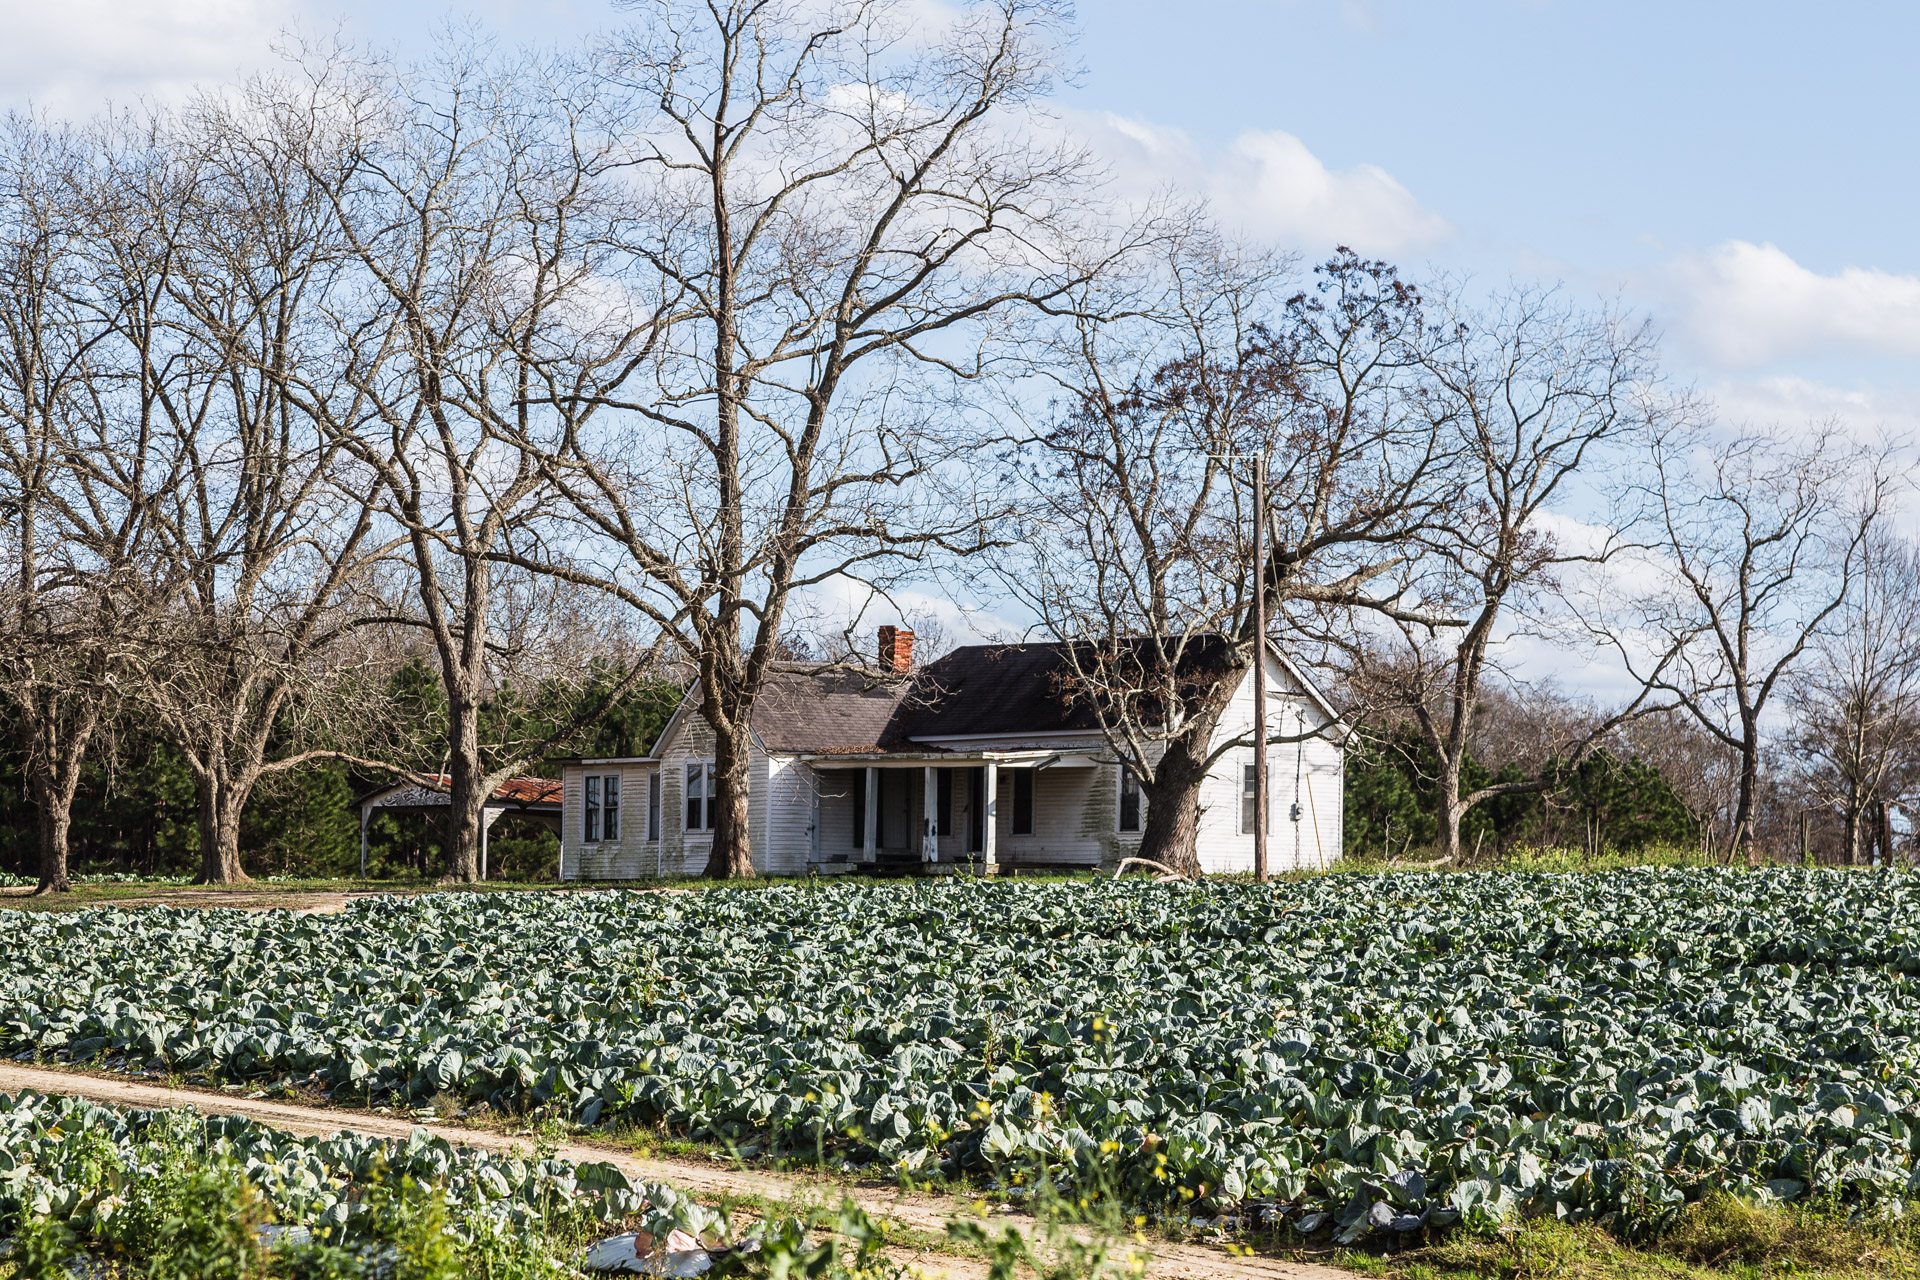 Tifton, Georgia - Cabbage Patch House